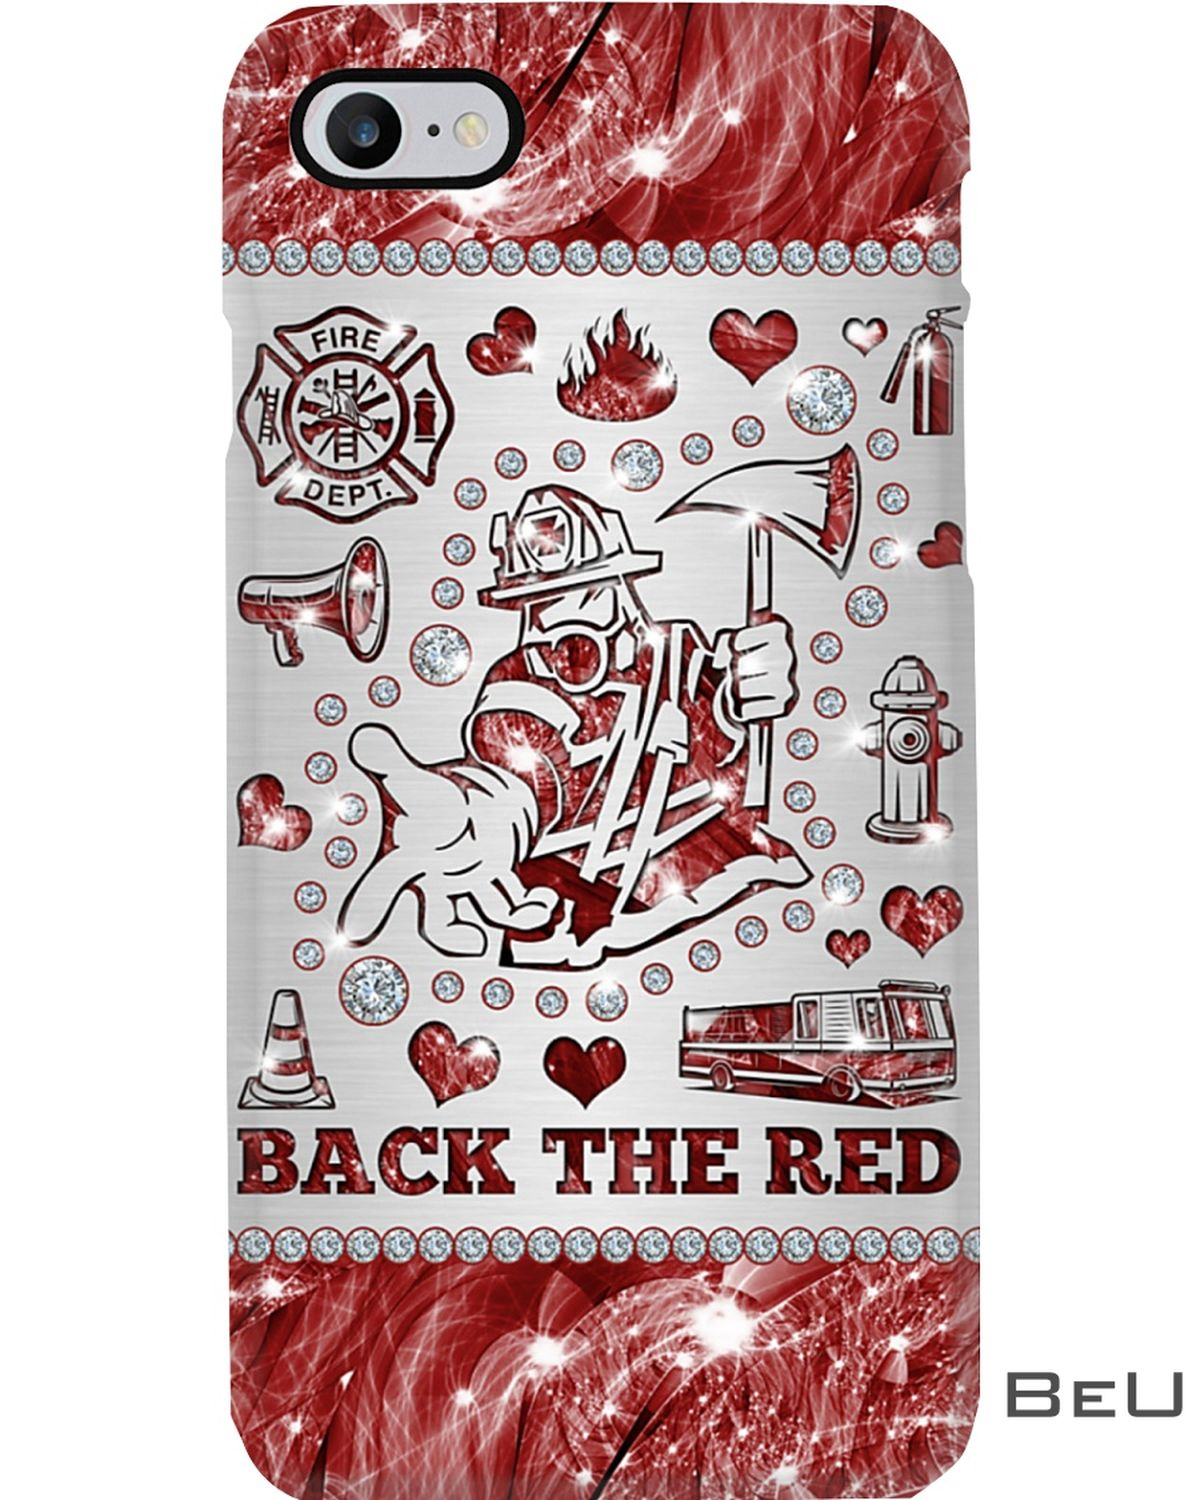 Back The Red Firefighter Phone Case